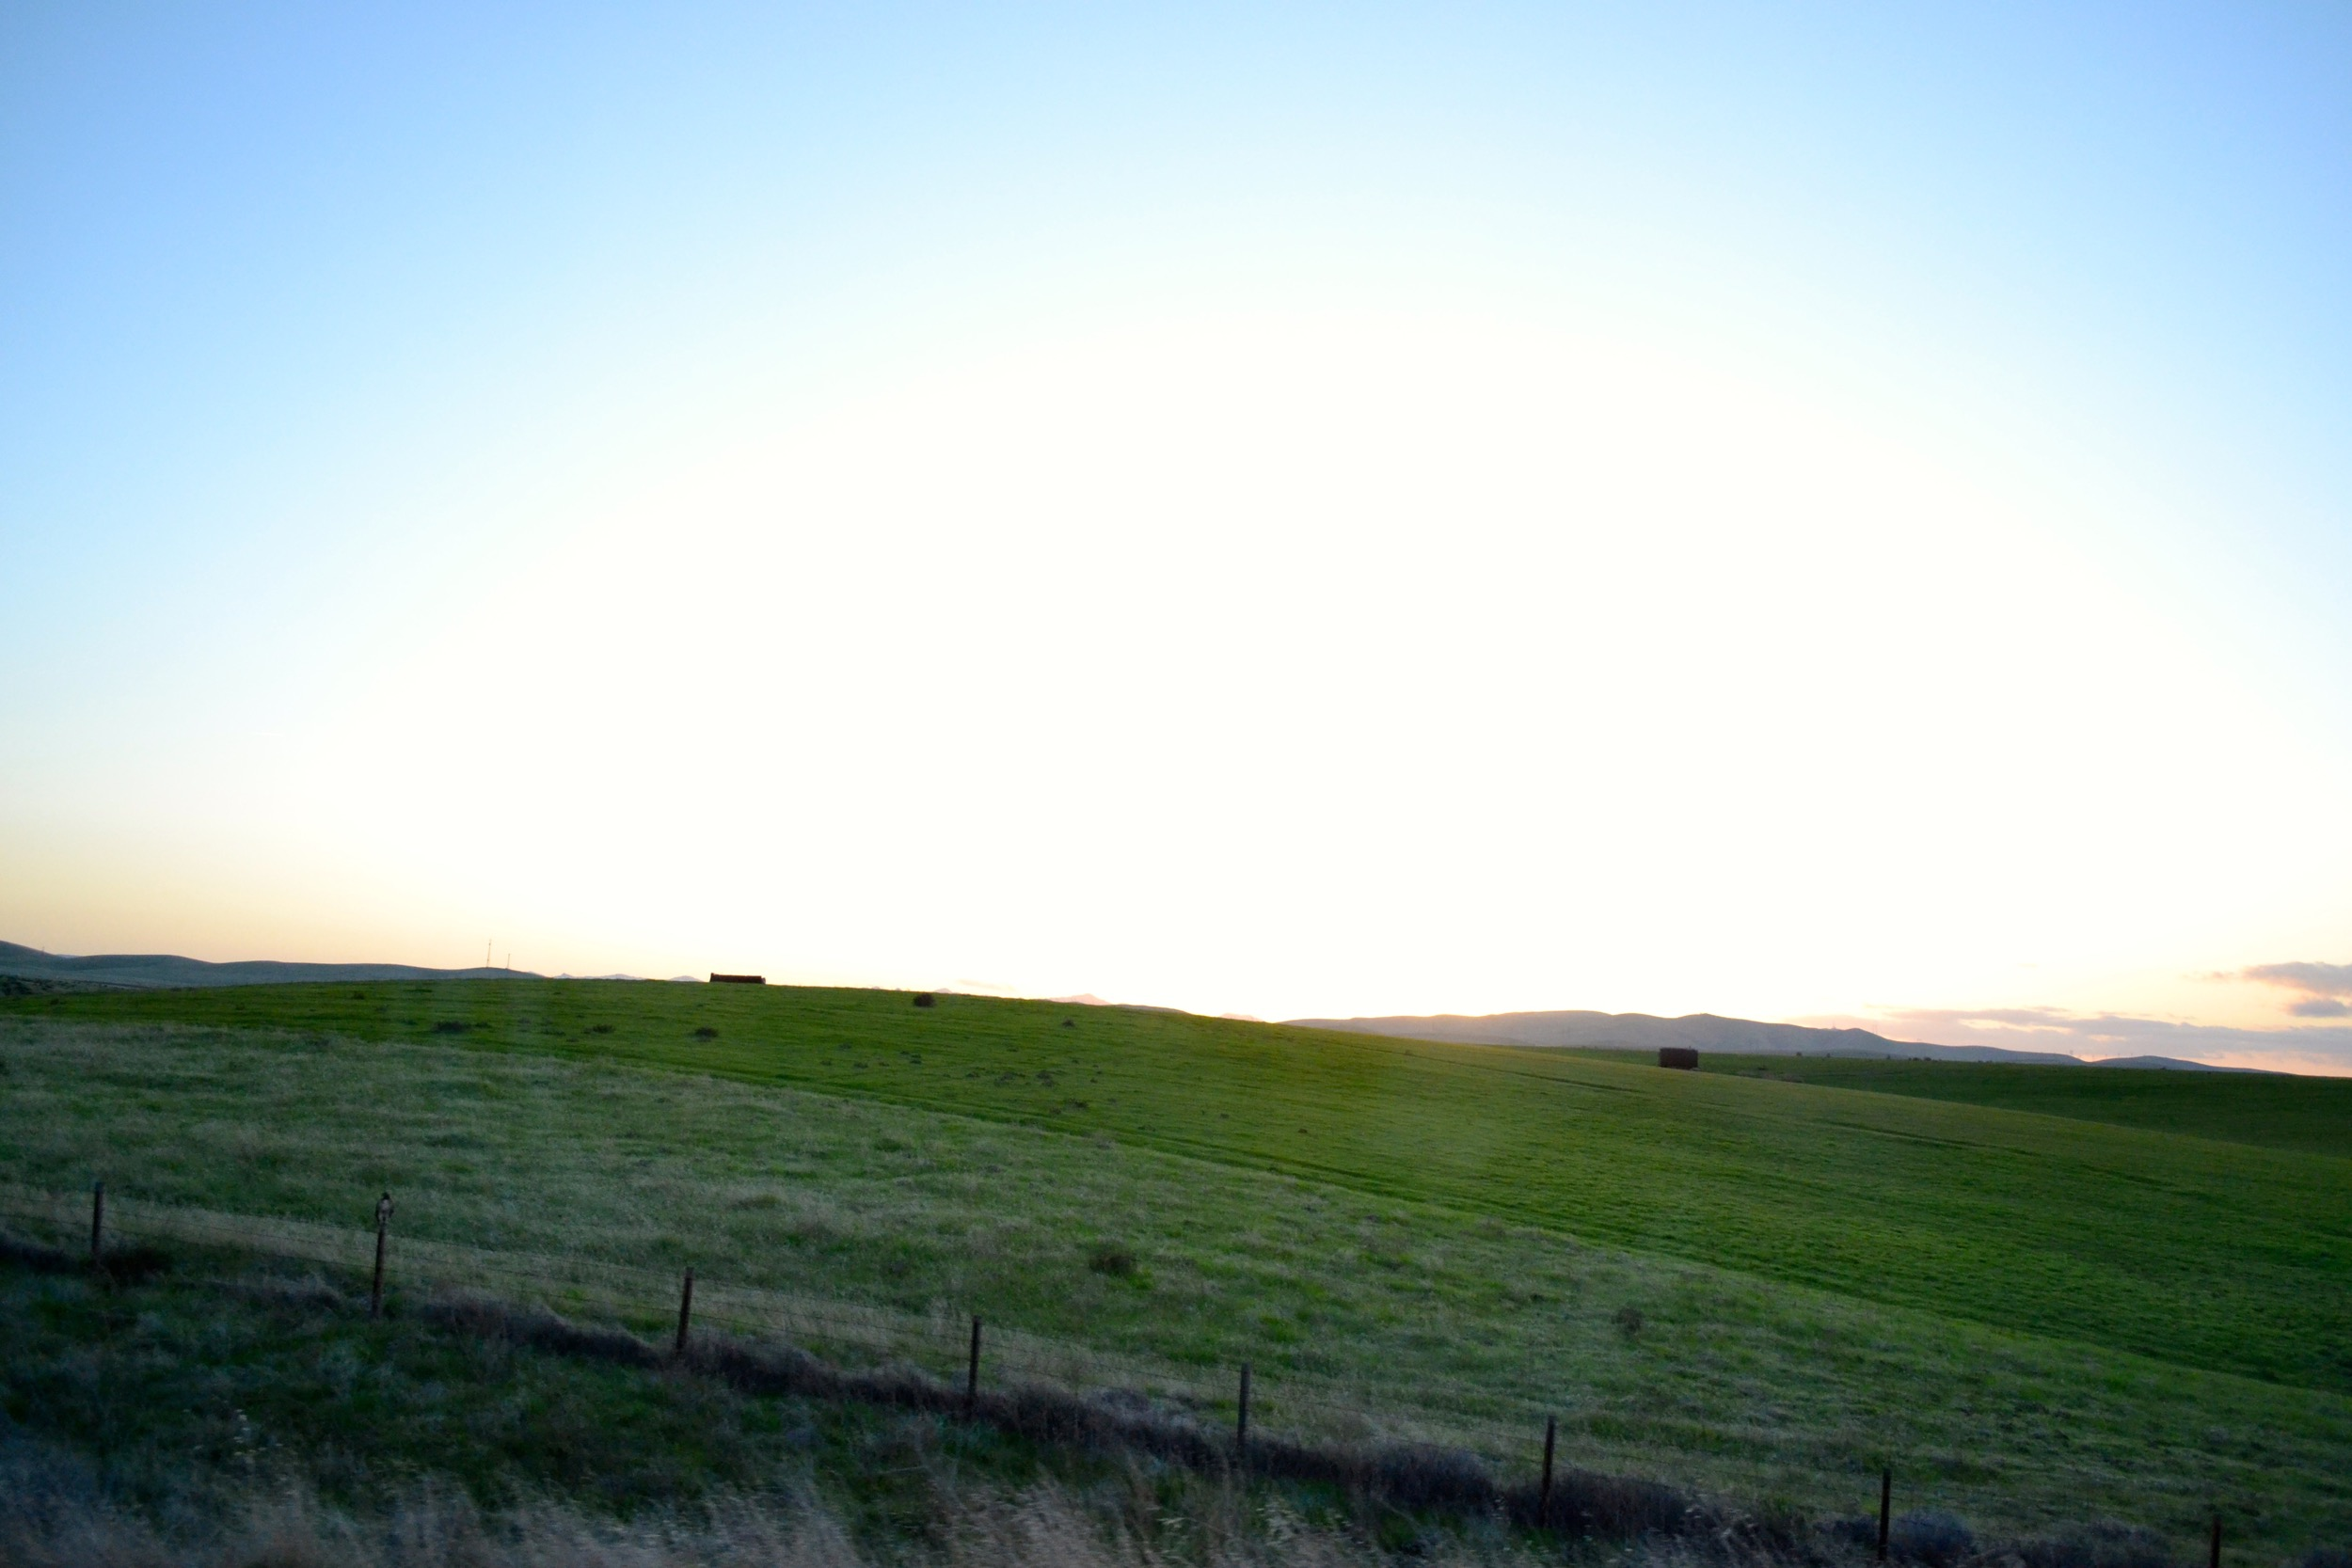 I just love these shots from the drive down. California is so incredibly beautiful.